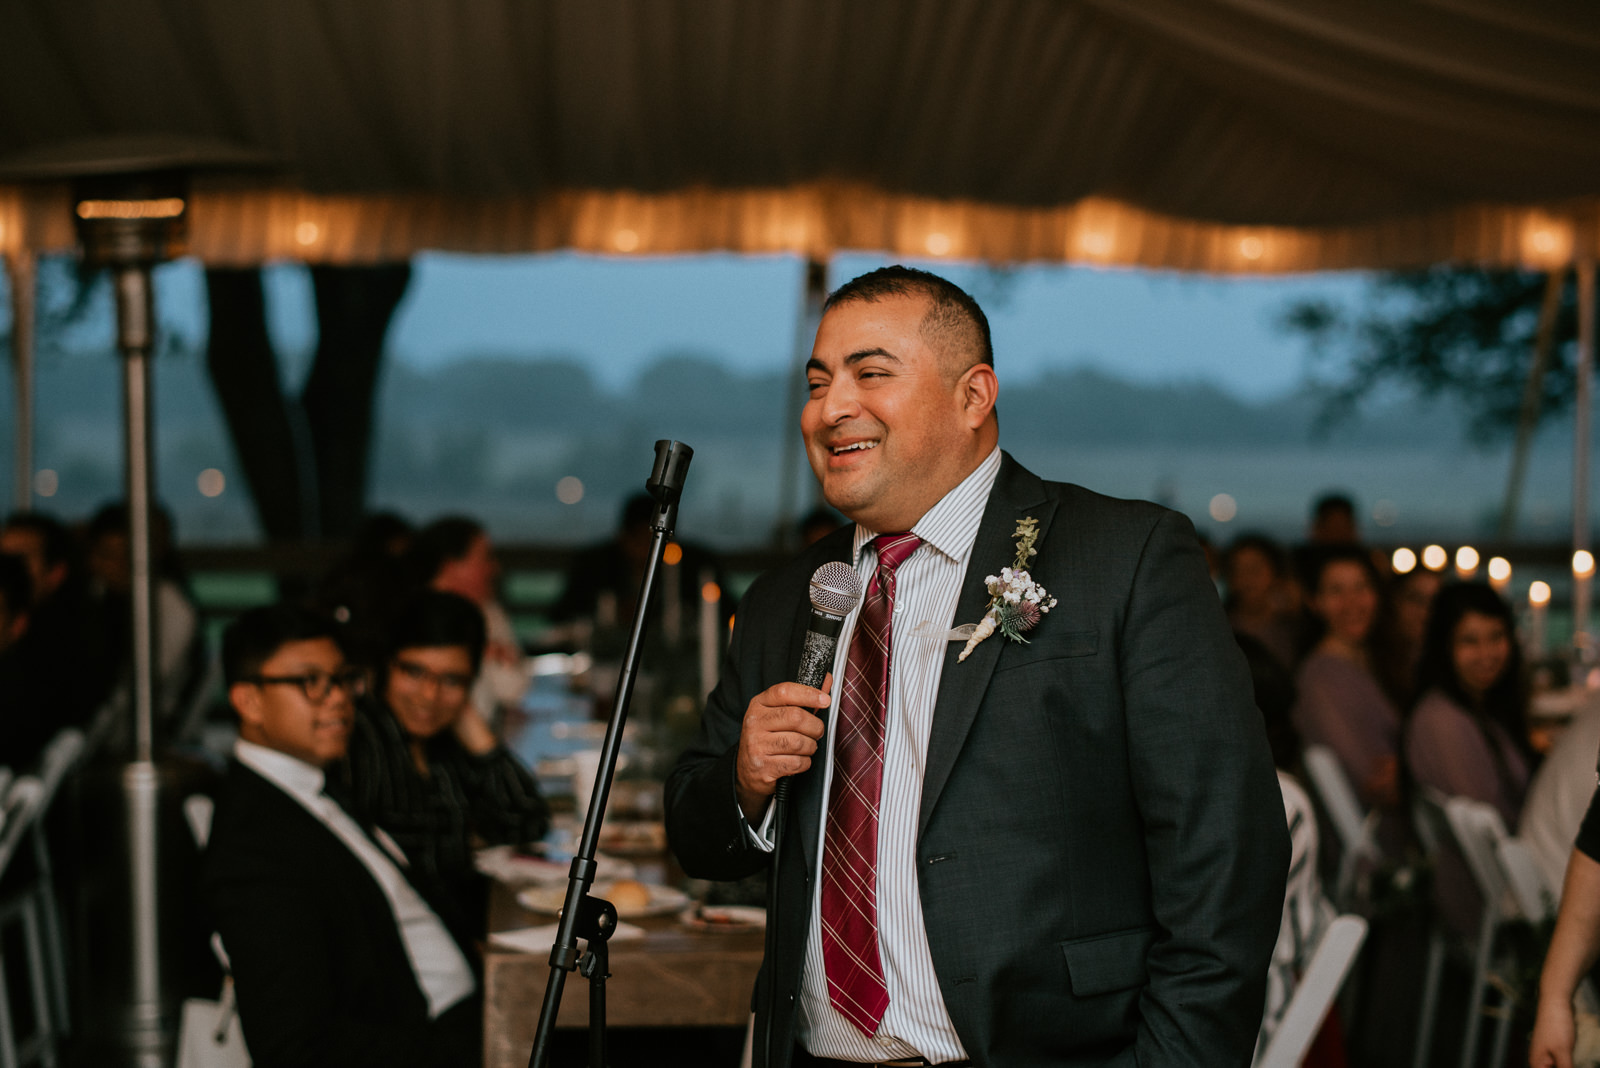 father of bride gives funny speech